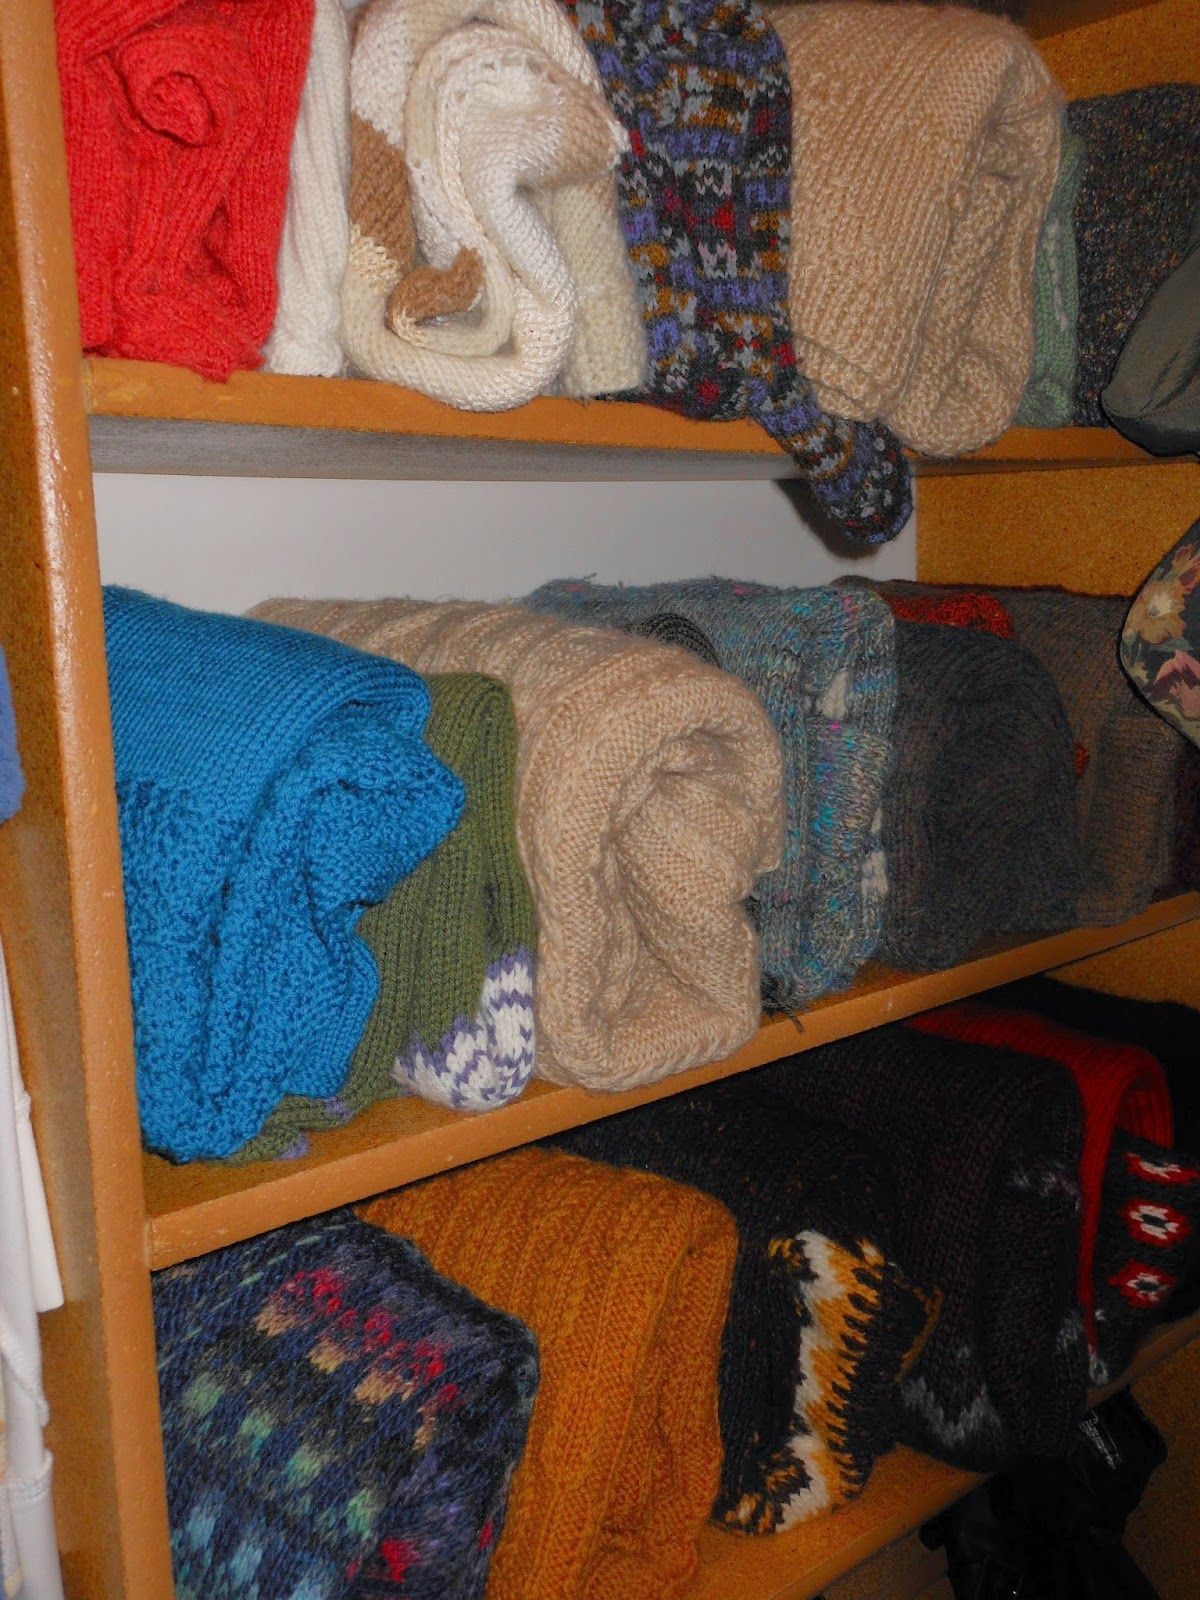 Konmari folded sweaters on shelves - source: I'm gonna ...